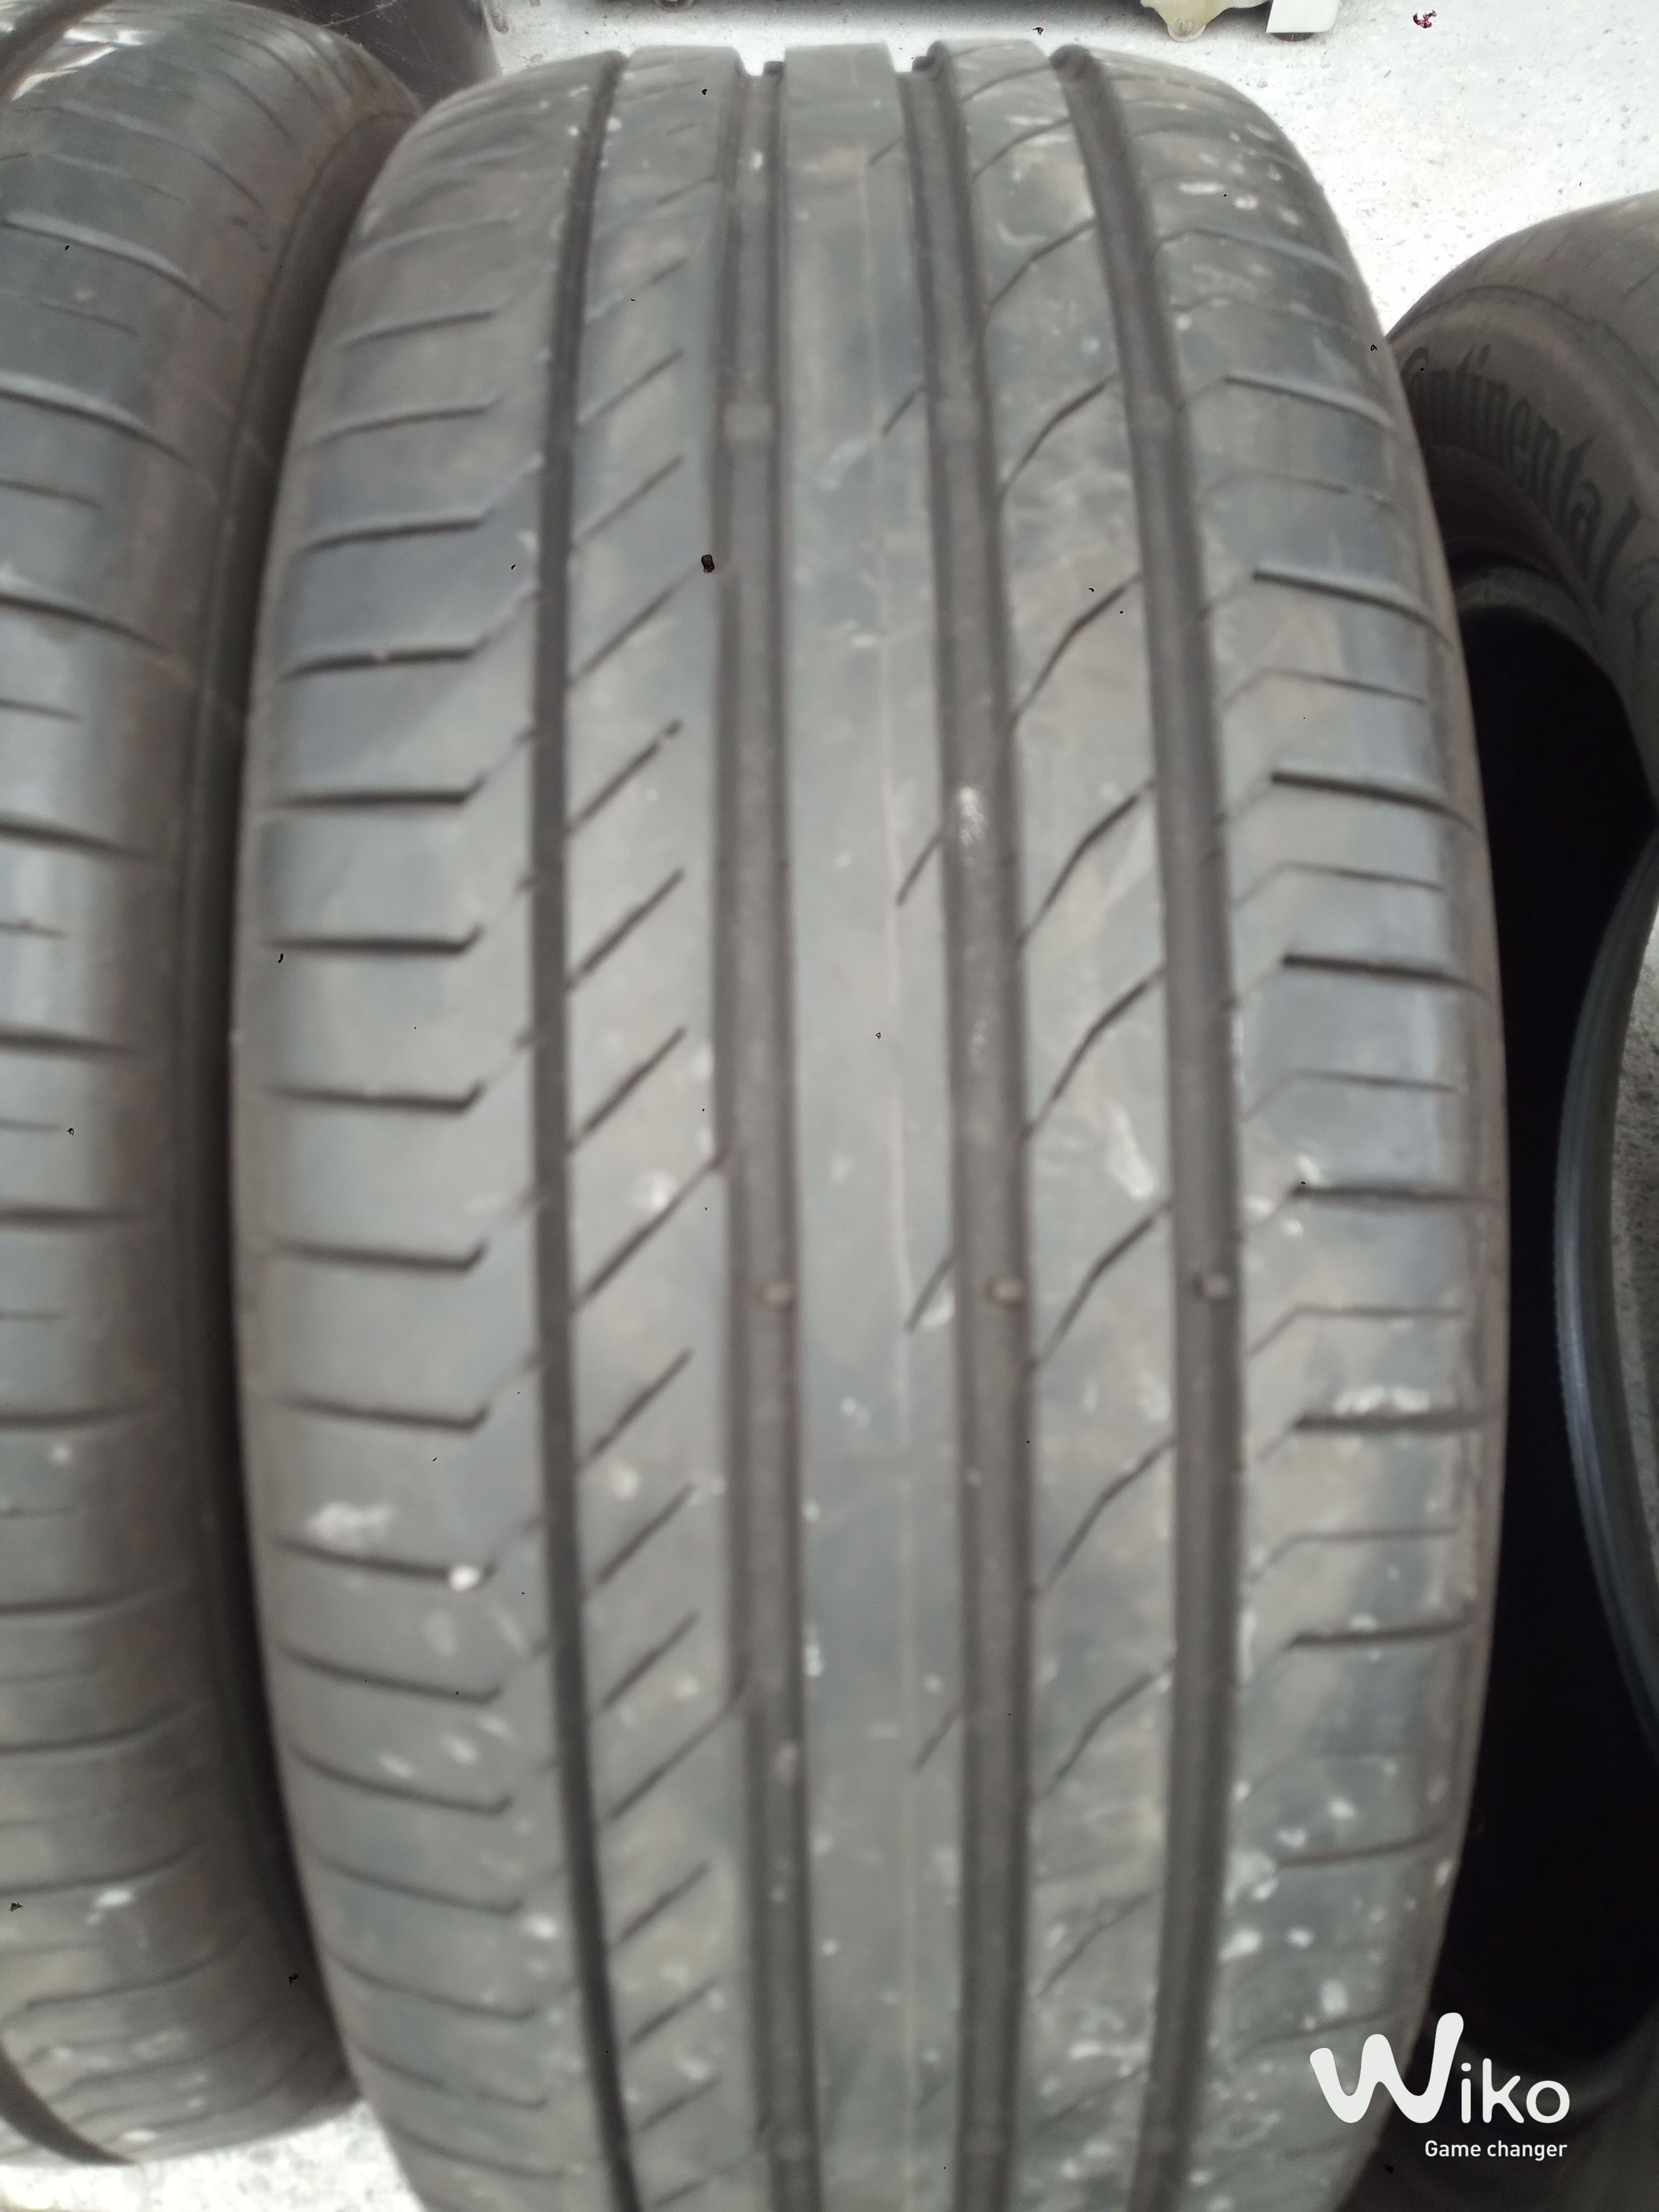 4 GOMME ESTIVE CONTINENTAL usate 235/50/18